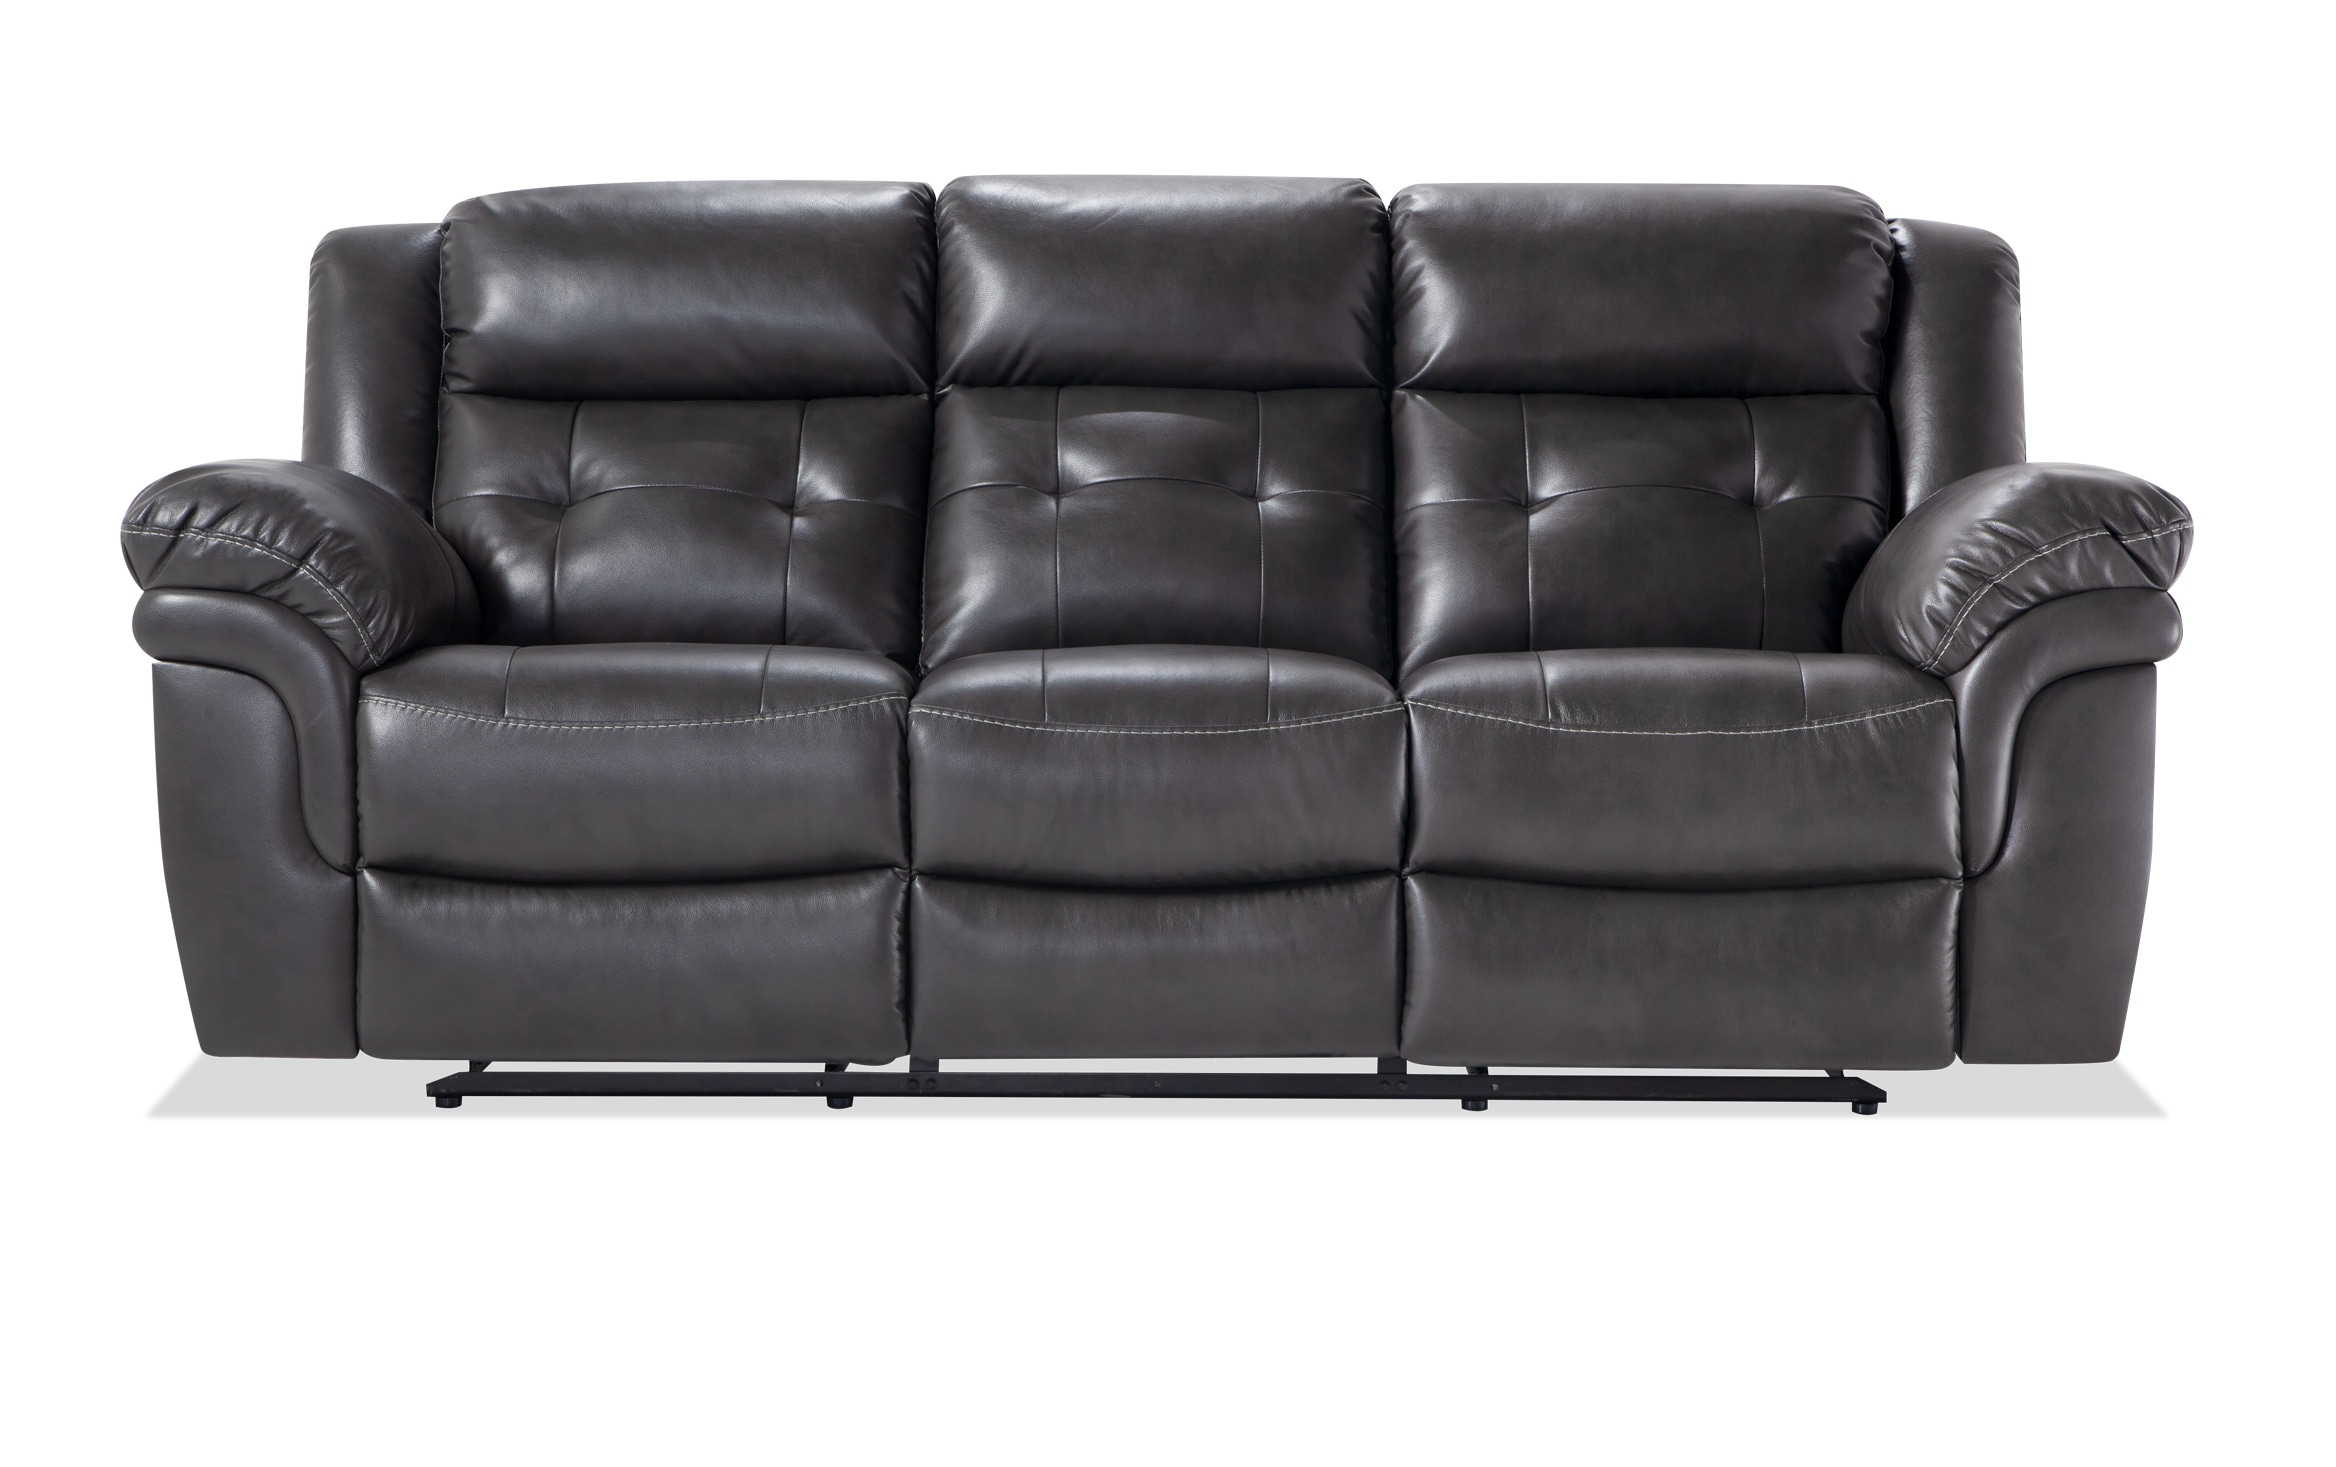 [%[download 25+] Bobs Furniture Leather Living Room Sets Within Latest Panther Black Leather Dual Power Reclining Sofas|panther Black Leather Dual Power Reclining Sofas Inside Most Popular [download 25+] Bobs Furniture Leather Living Room Sets|best And Newest Panther Black Leather Dual Power Reclining Sofas Within [download 25+] Bobs Furniture Leather Living Room Sets|well Liked [download 25+] Bobs Furniture Leather Living Room Sets For Panther Black Leather Dual Power Reclining Sofas%] (View 1 of 20)